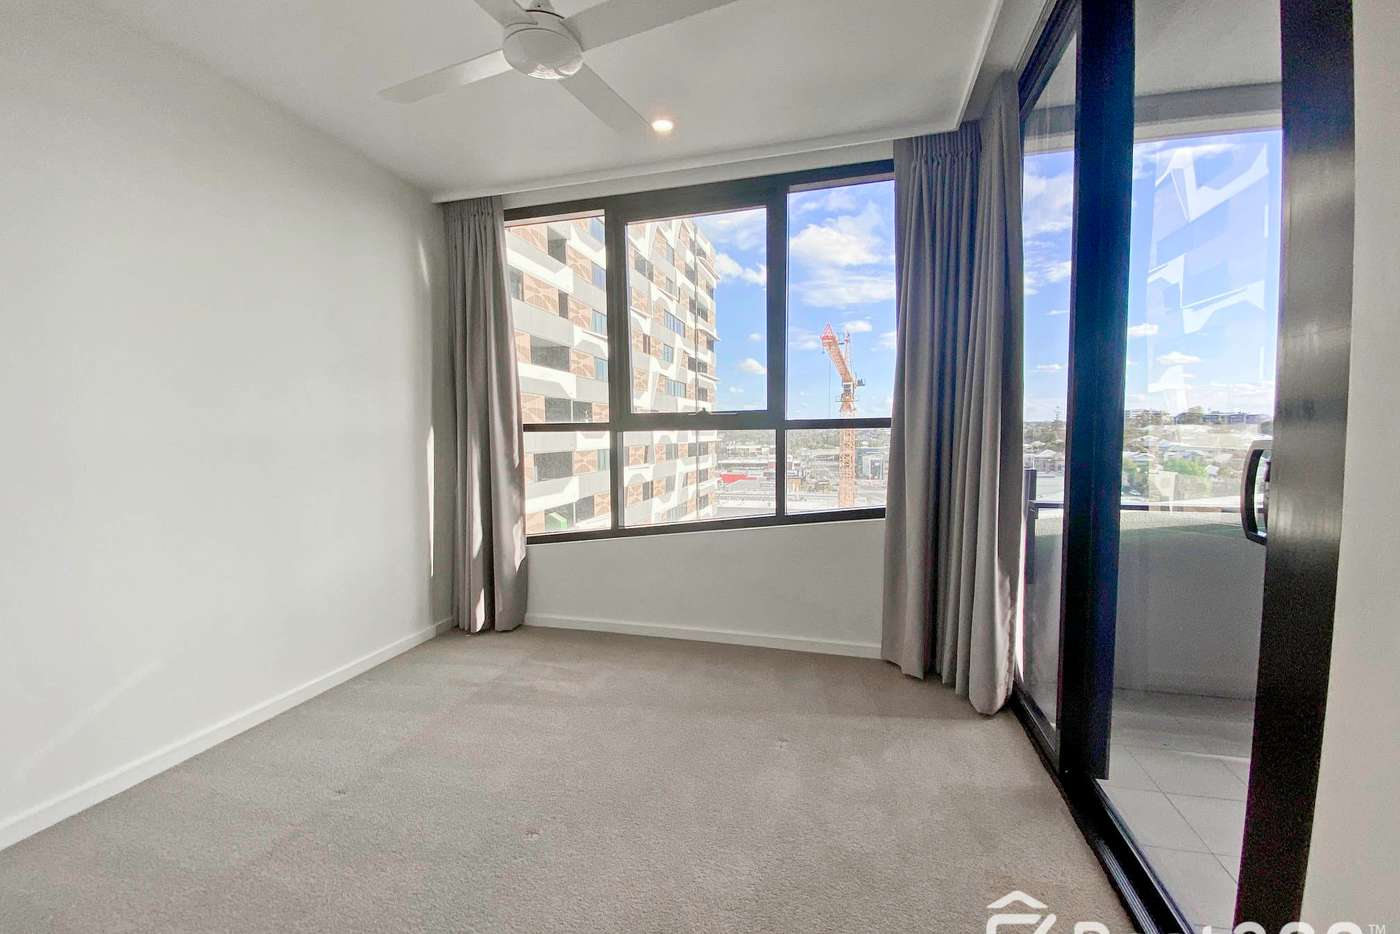 Sixth view of Homely apartment listing, 901/17 Deshon Street, Woolloongabba QLD 4102